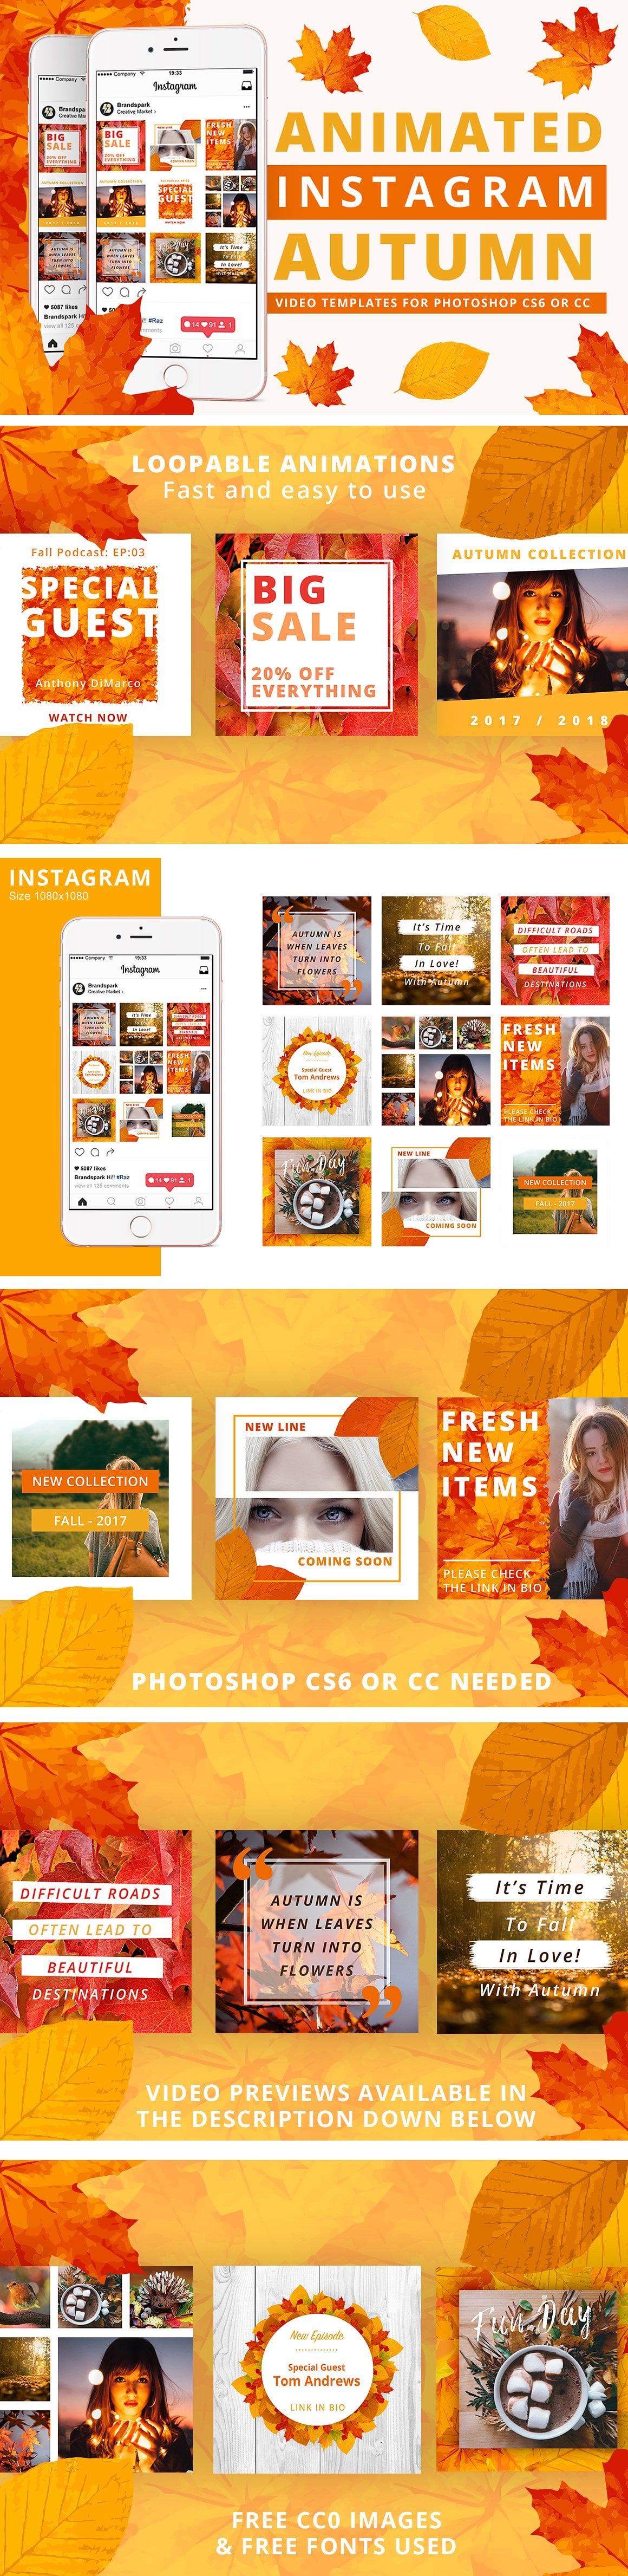 Animated Instagram Graphics Bundle - autumn fall social media instagram posts graphic design facebook pinterest leaves colors october business entrepreneur animated animate video gif loop loopable 0